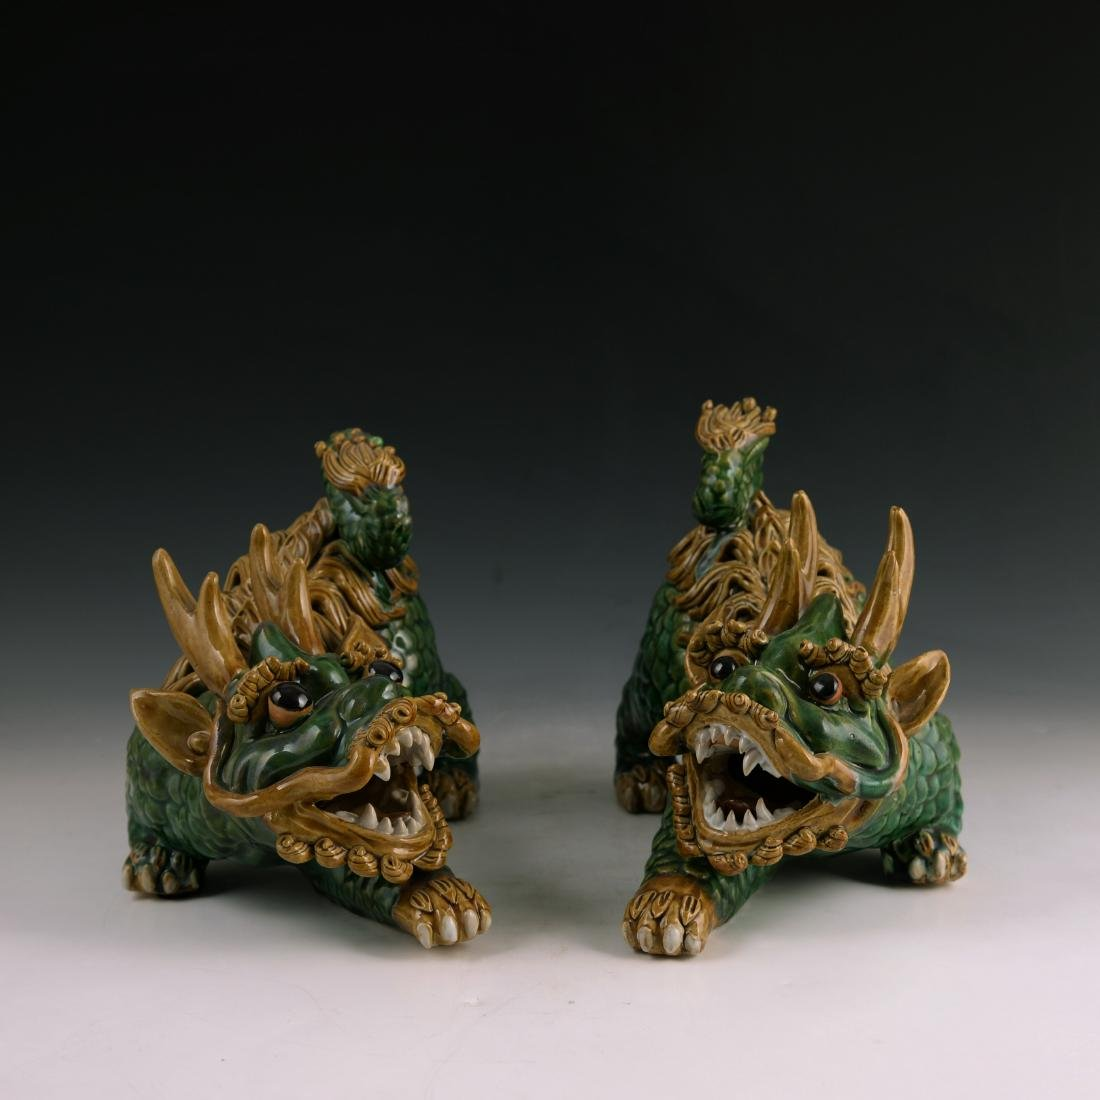 Pair of Chinese Porcelain Qiling State